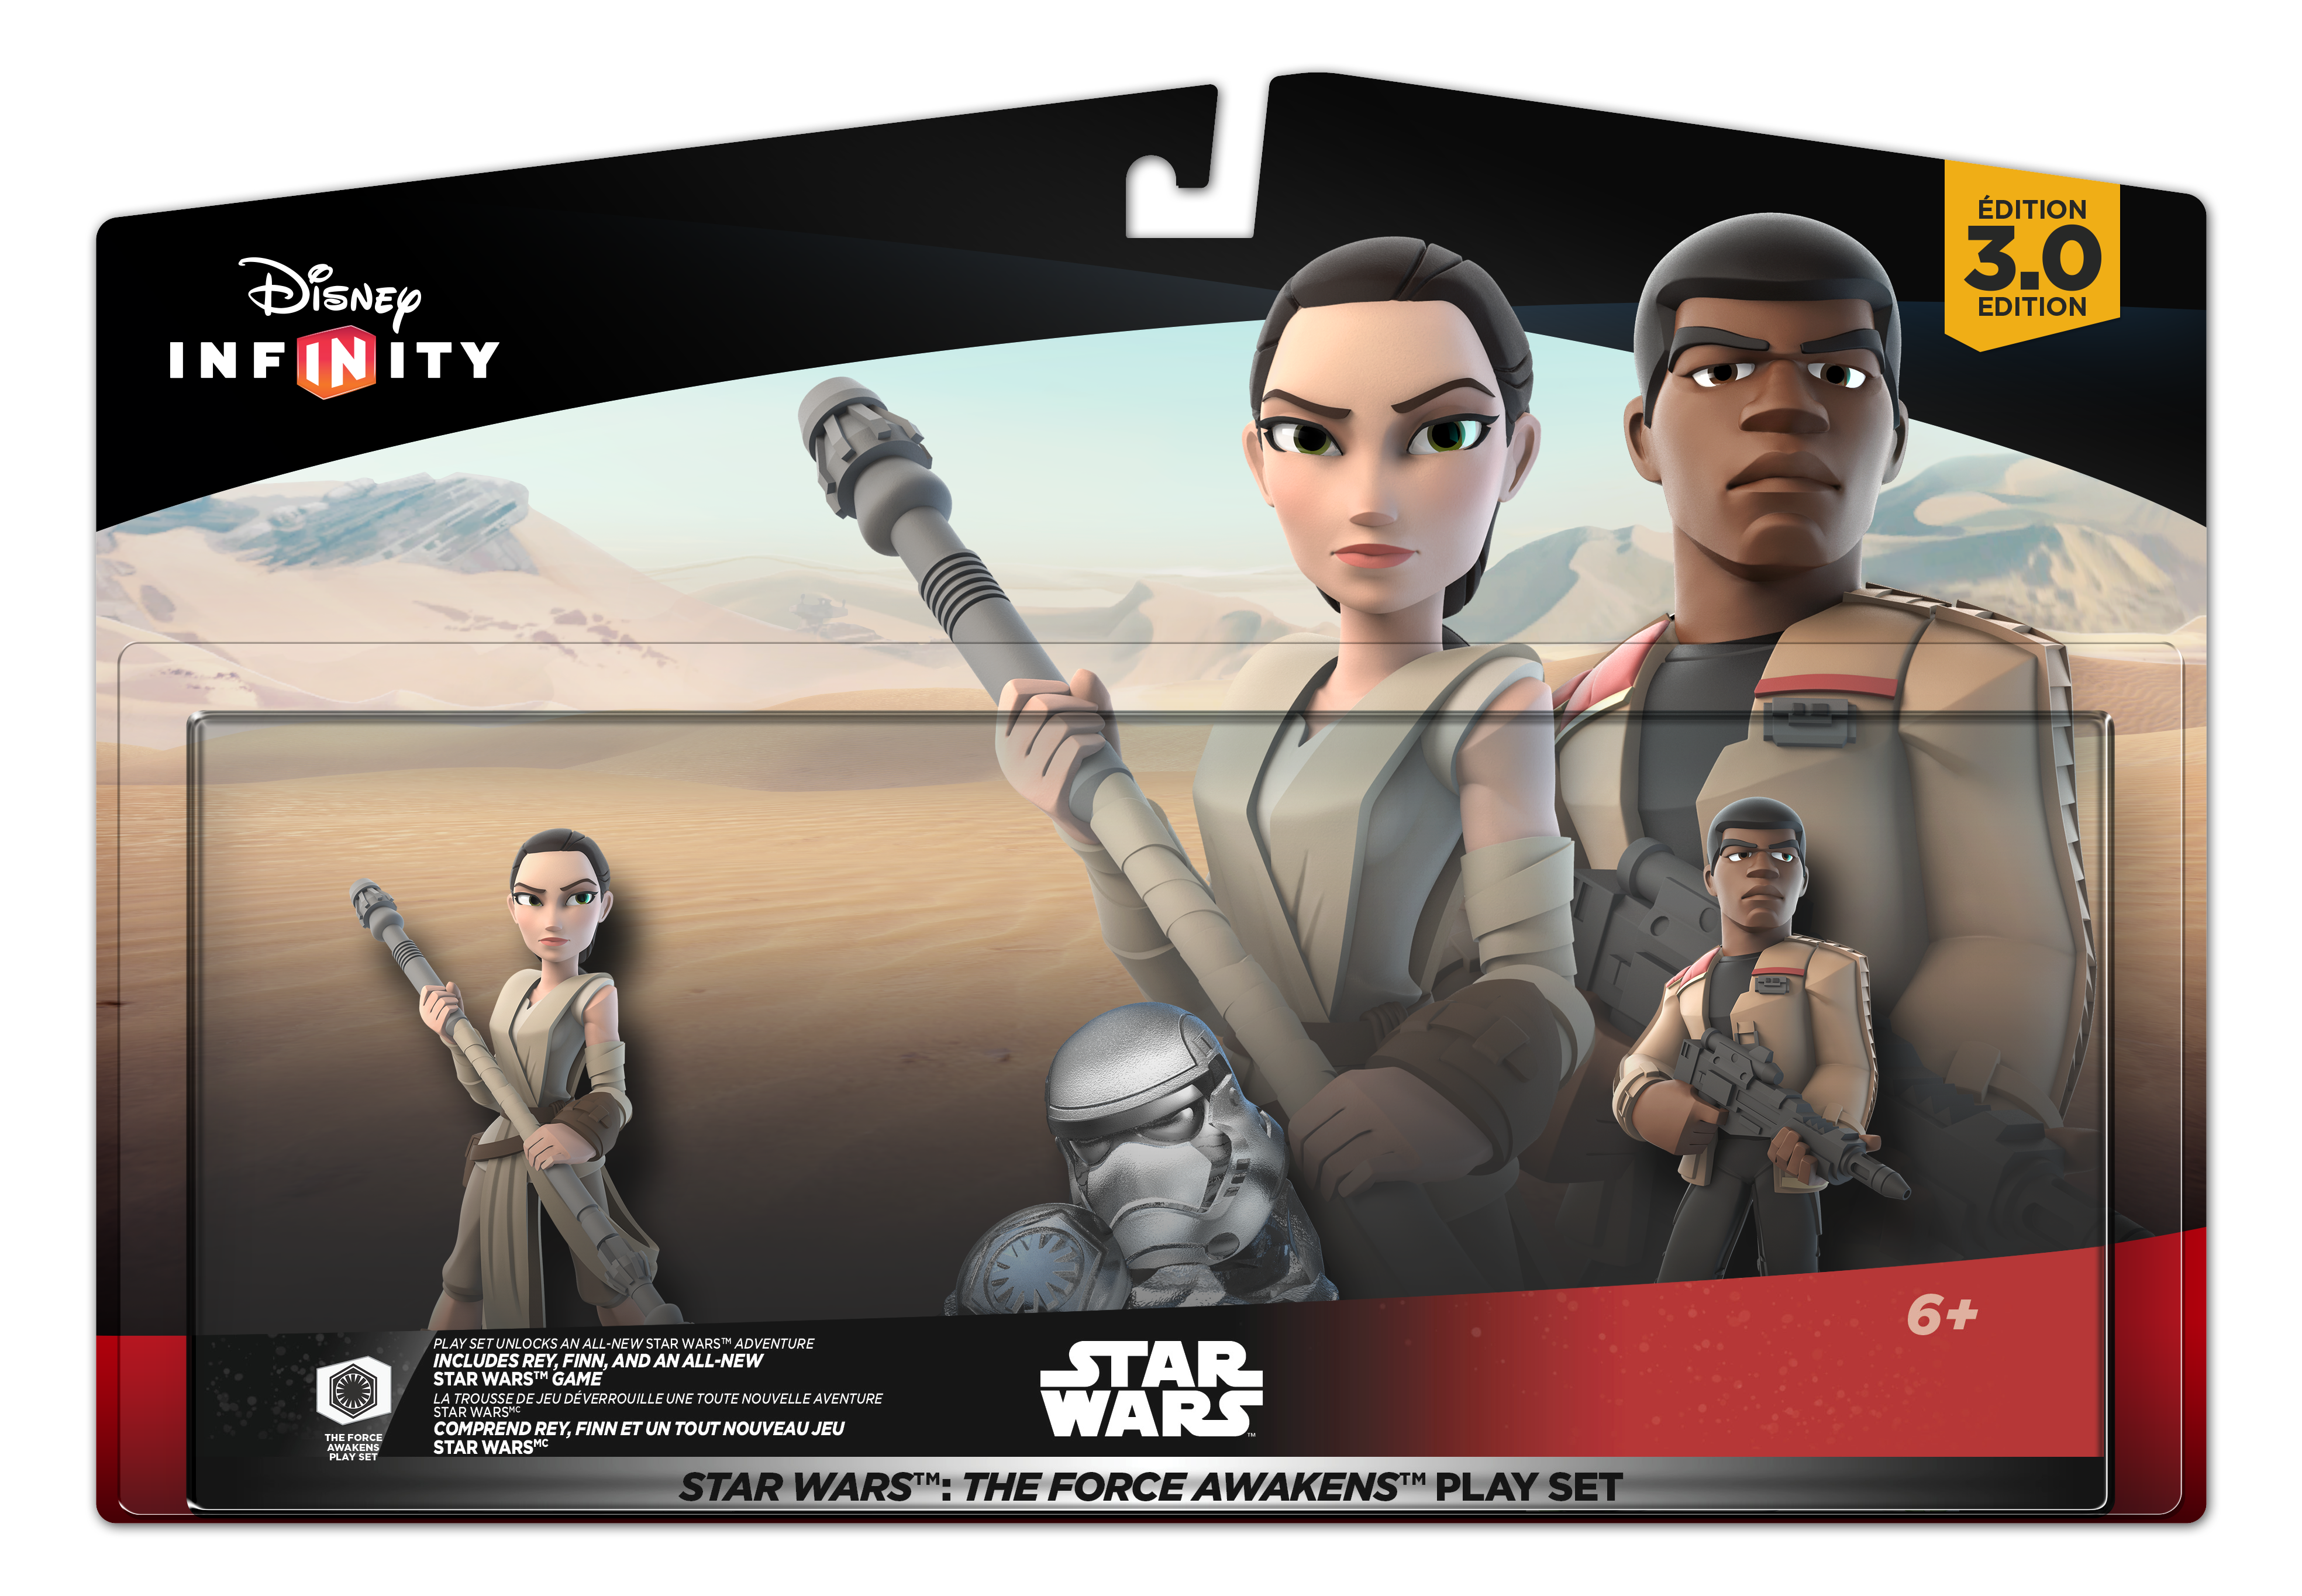 Disney Infinity 3.0 Should Have Led With The Force Awakens